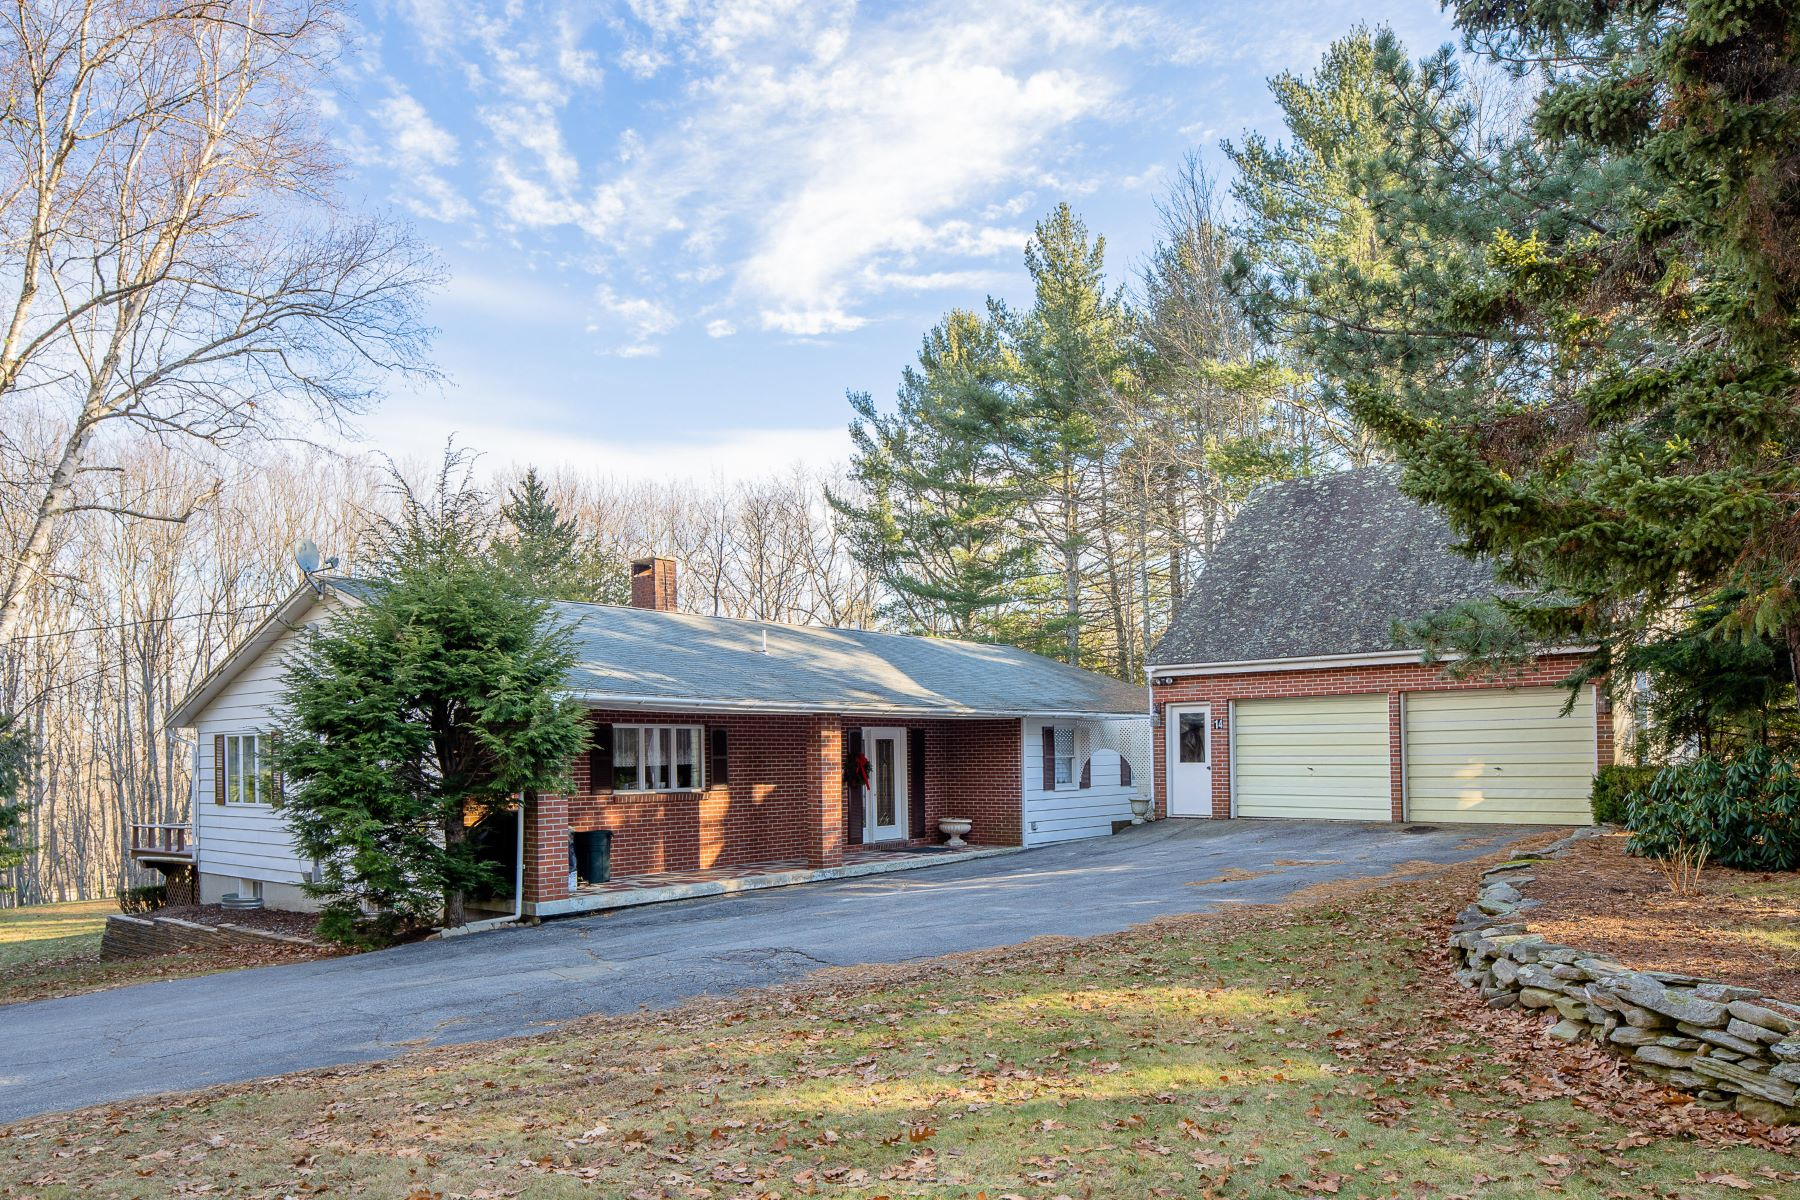 Single Family Homes for Sale at 14 Beacon Avenue Camden, Maine 04843 United States